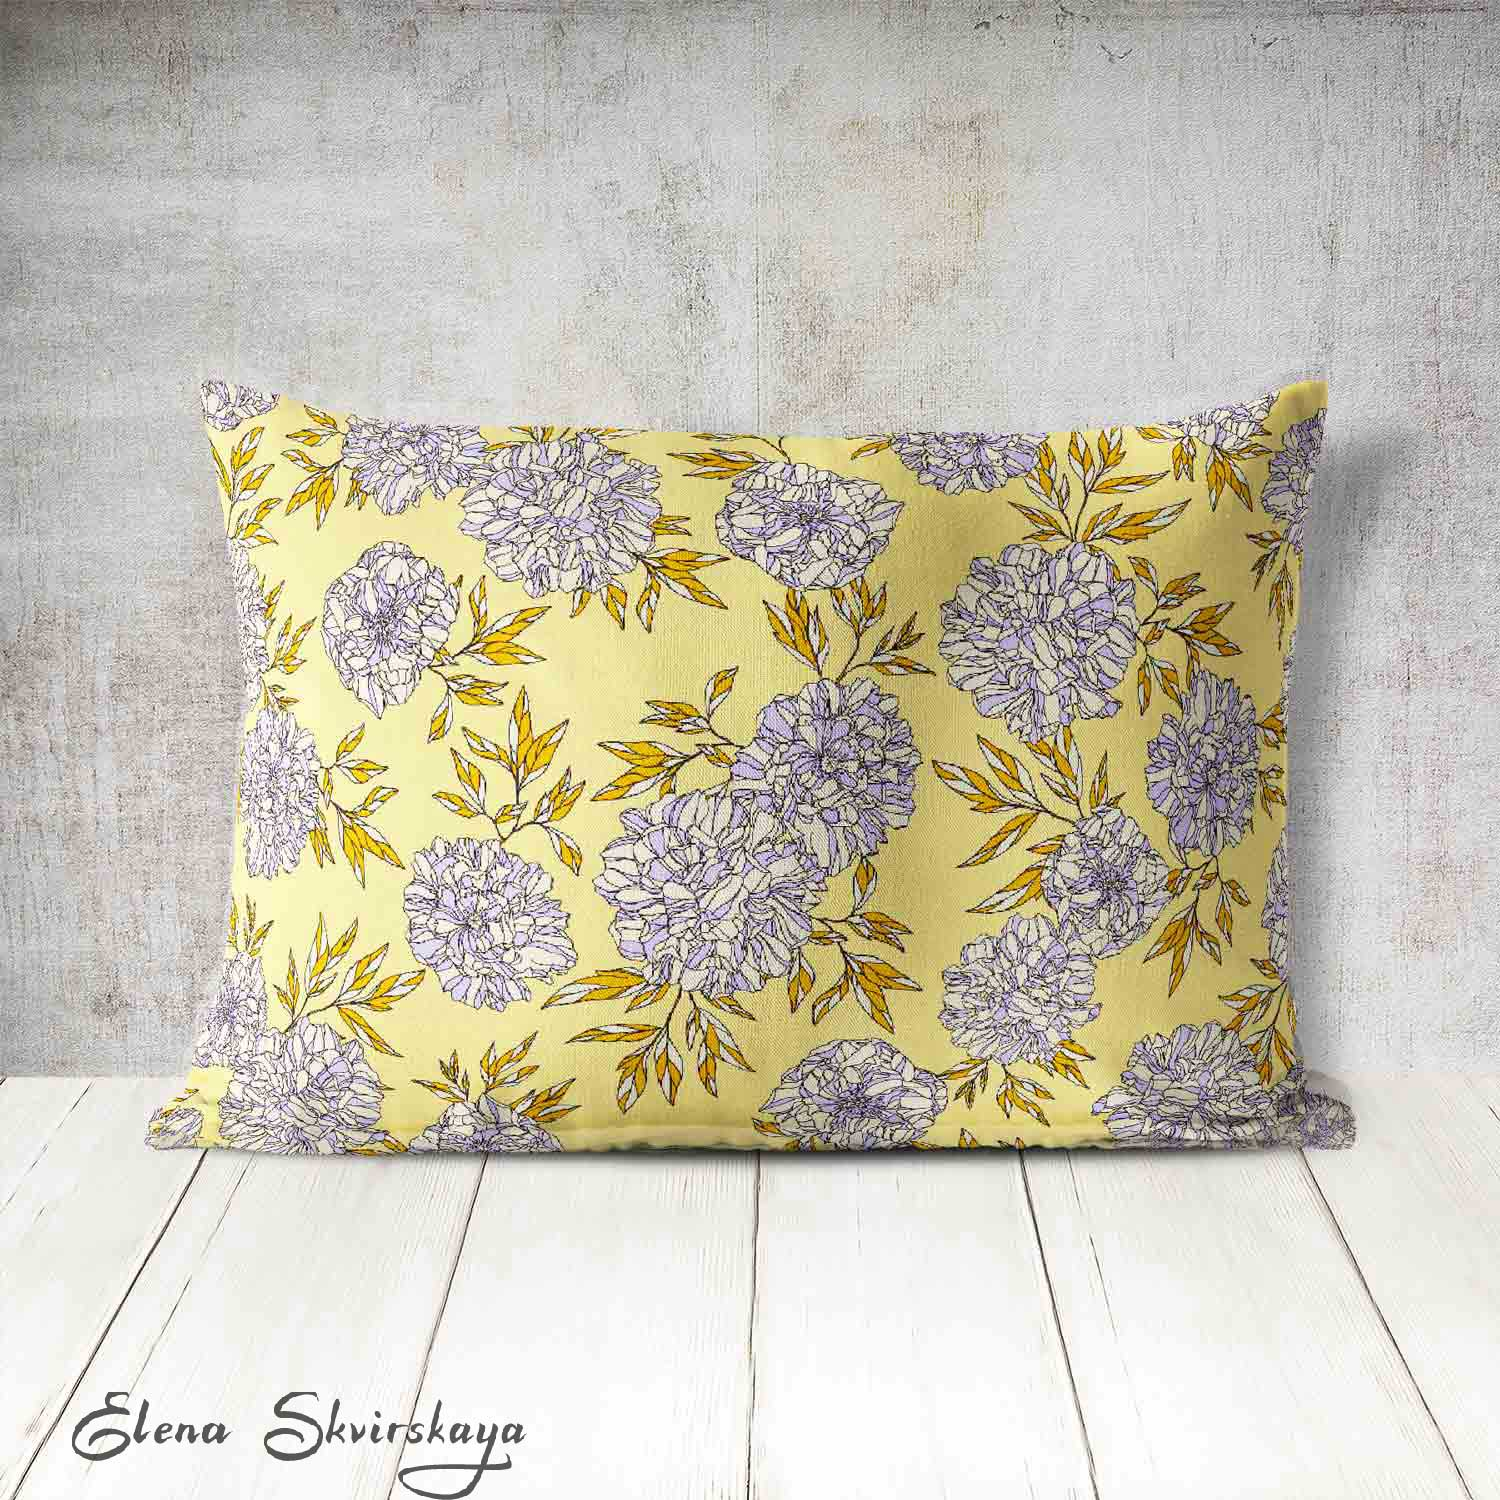 mock-up of an illustration style floral on a cushion, home decor